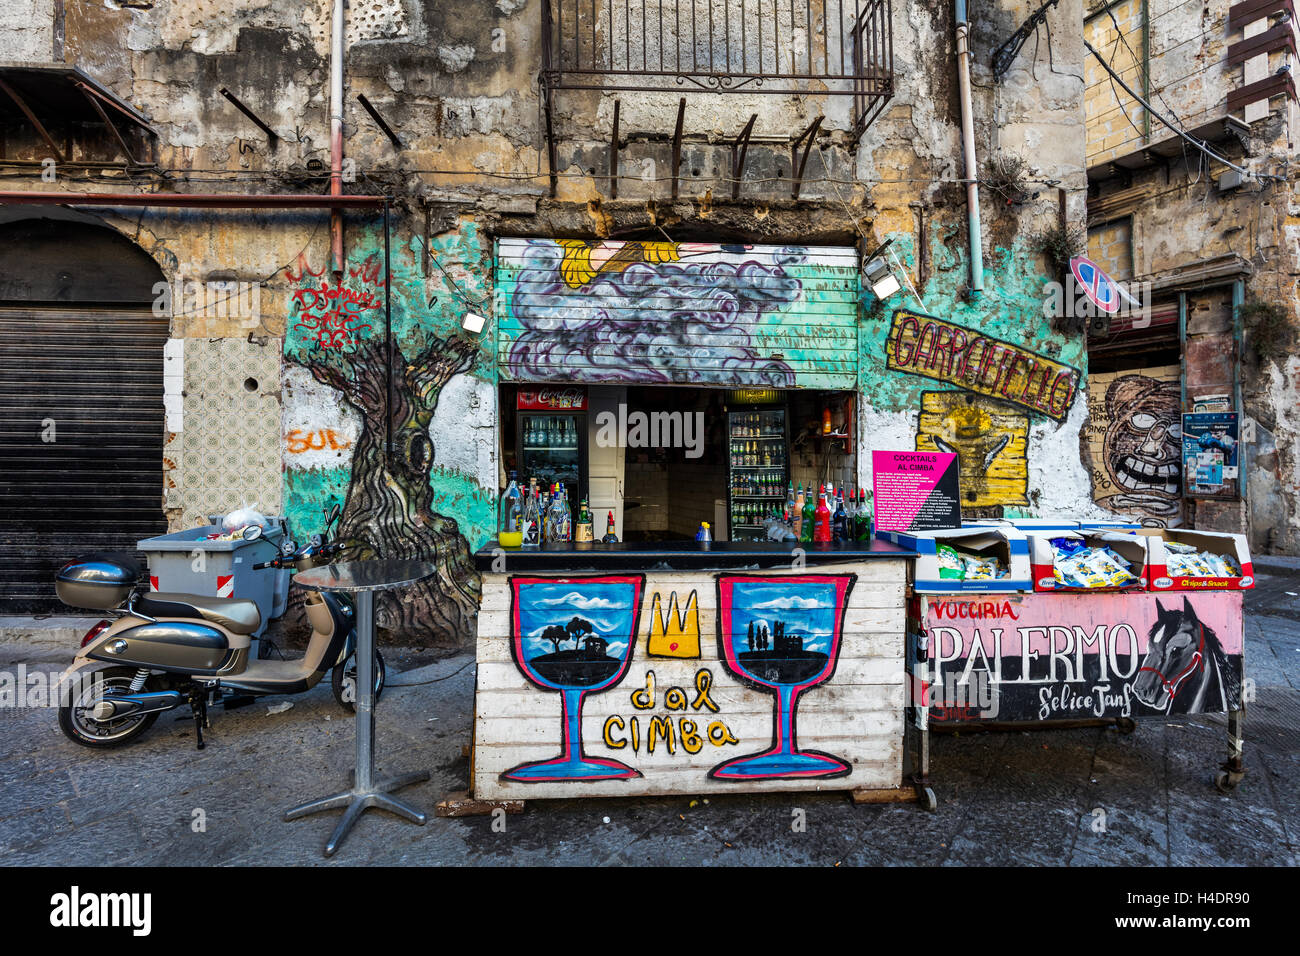 Street Bar In The Graffiti Covered Neighborhood Of Palermo Sicily